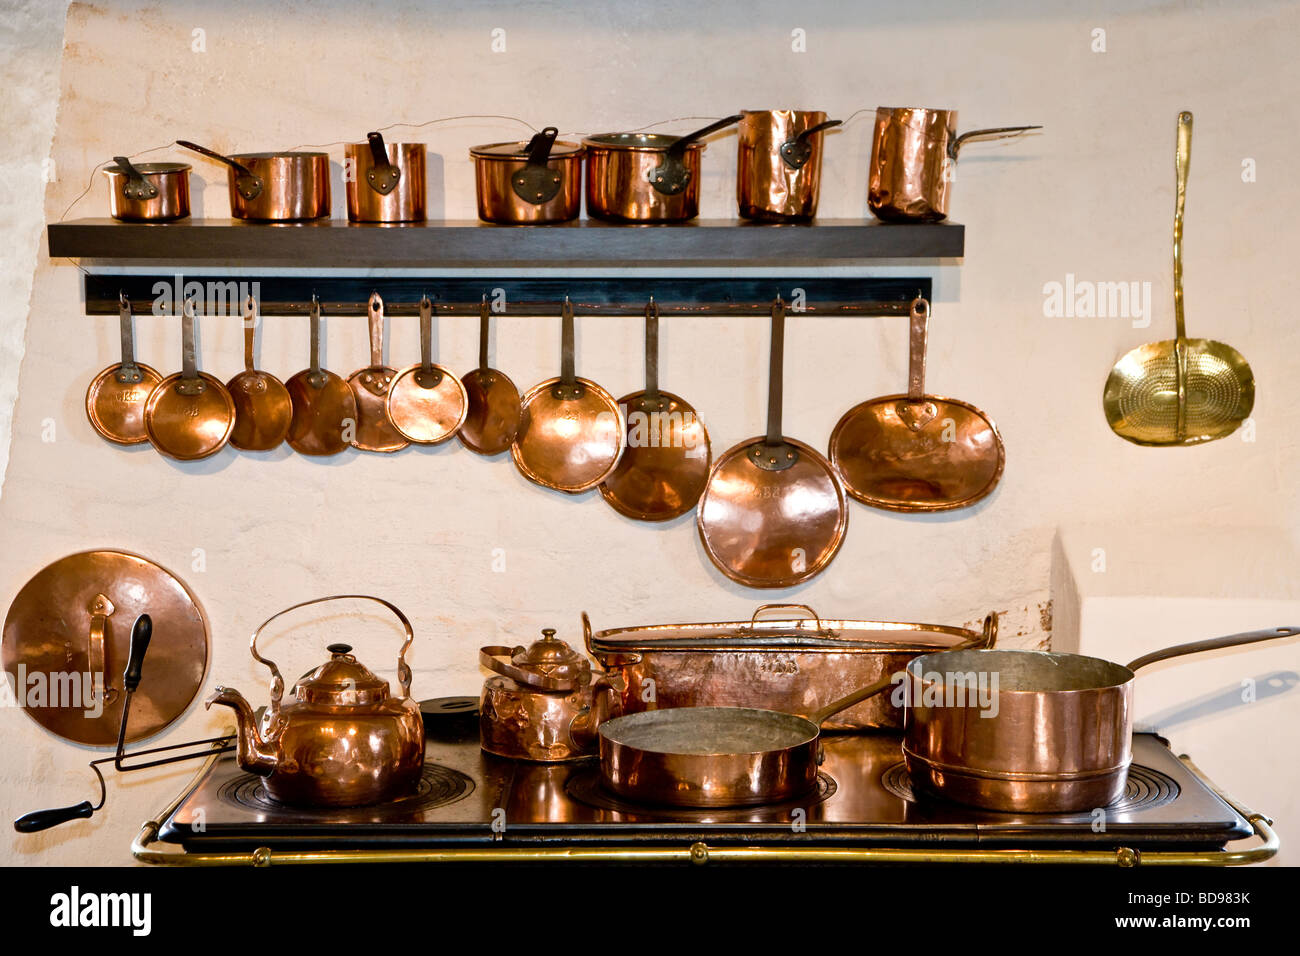 Kitchen Equipment old kitchen equipment stock photos & old kitchen equipment stock